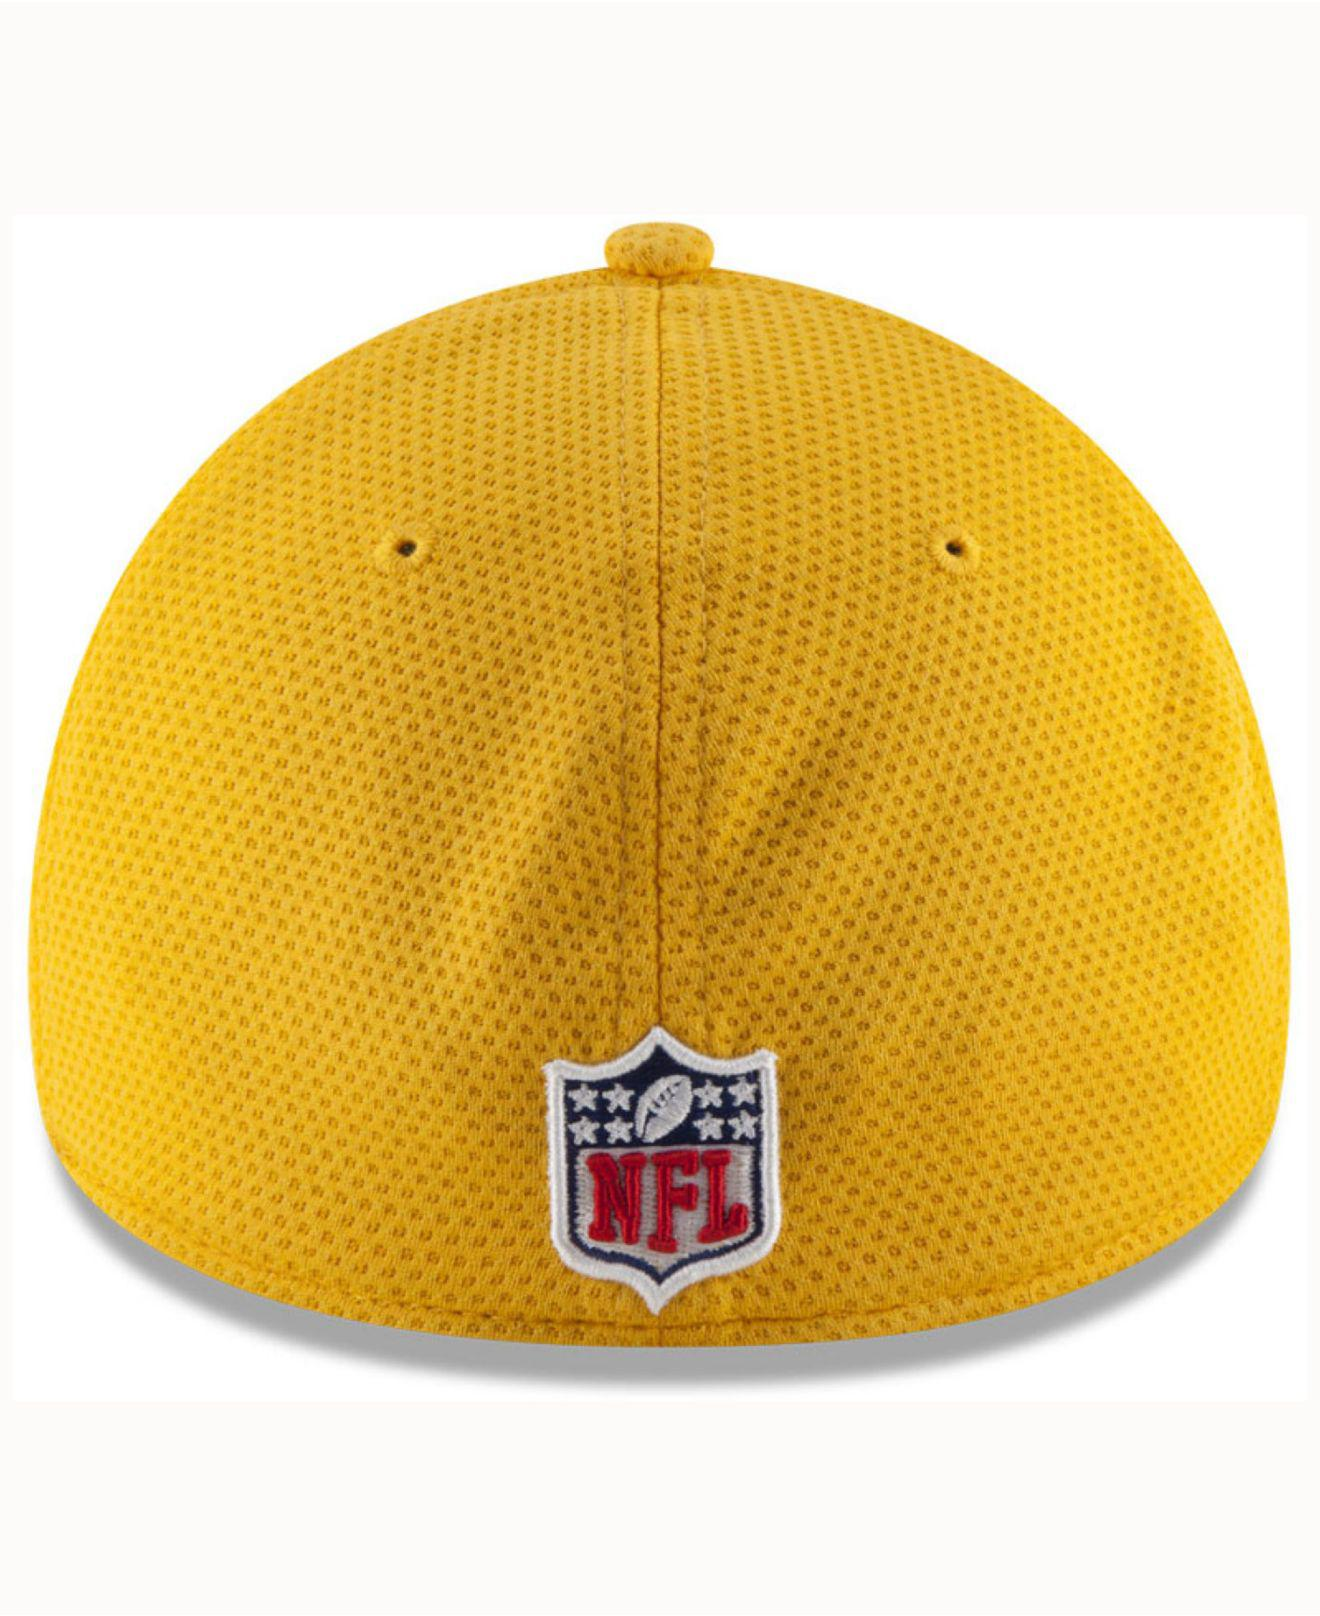 10e3e956a Lyst - KTZ Washington Redskins On-field Color Rush 39thirty Cap in ...